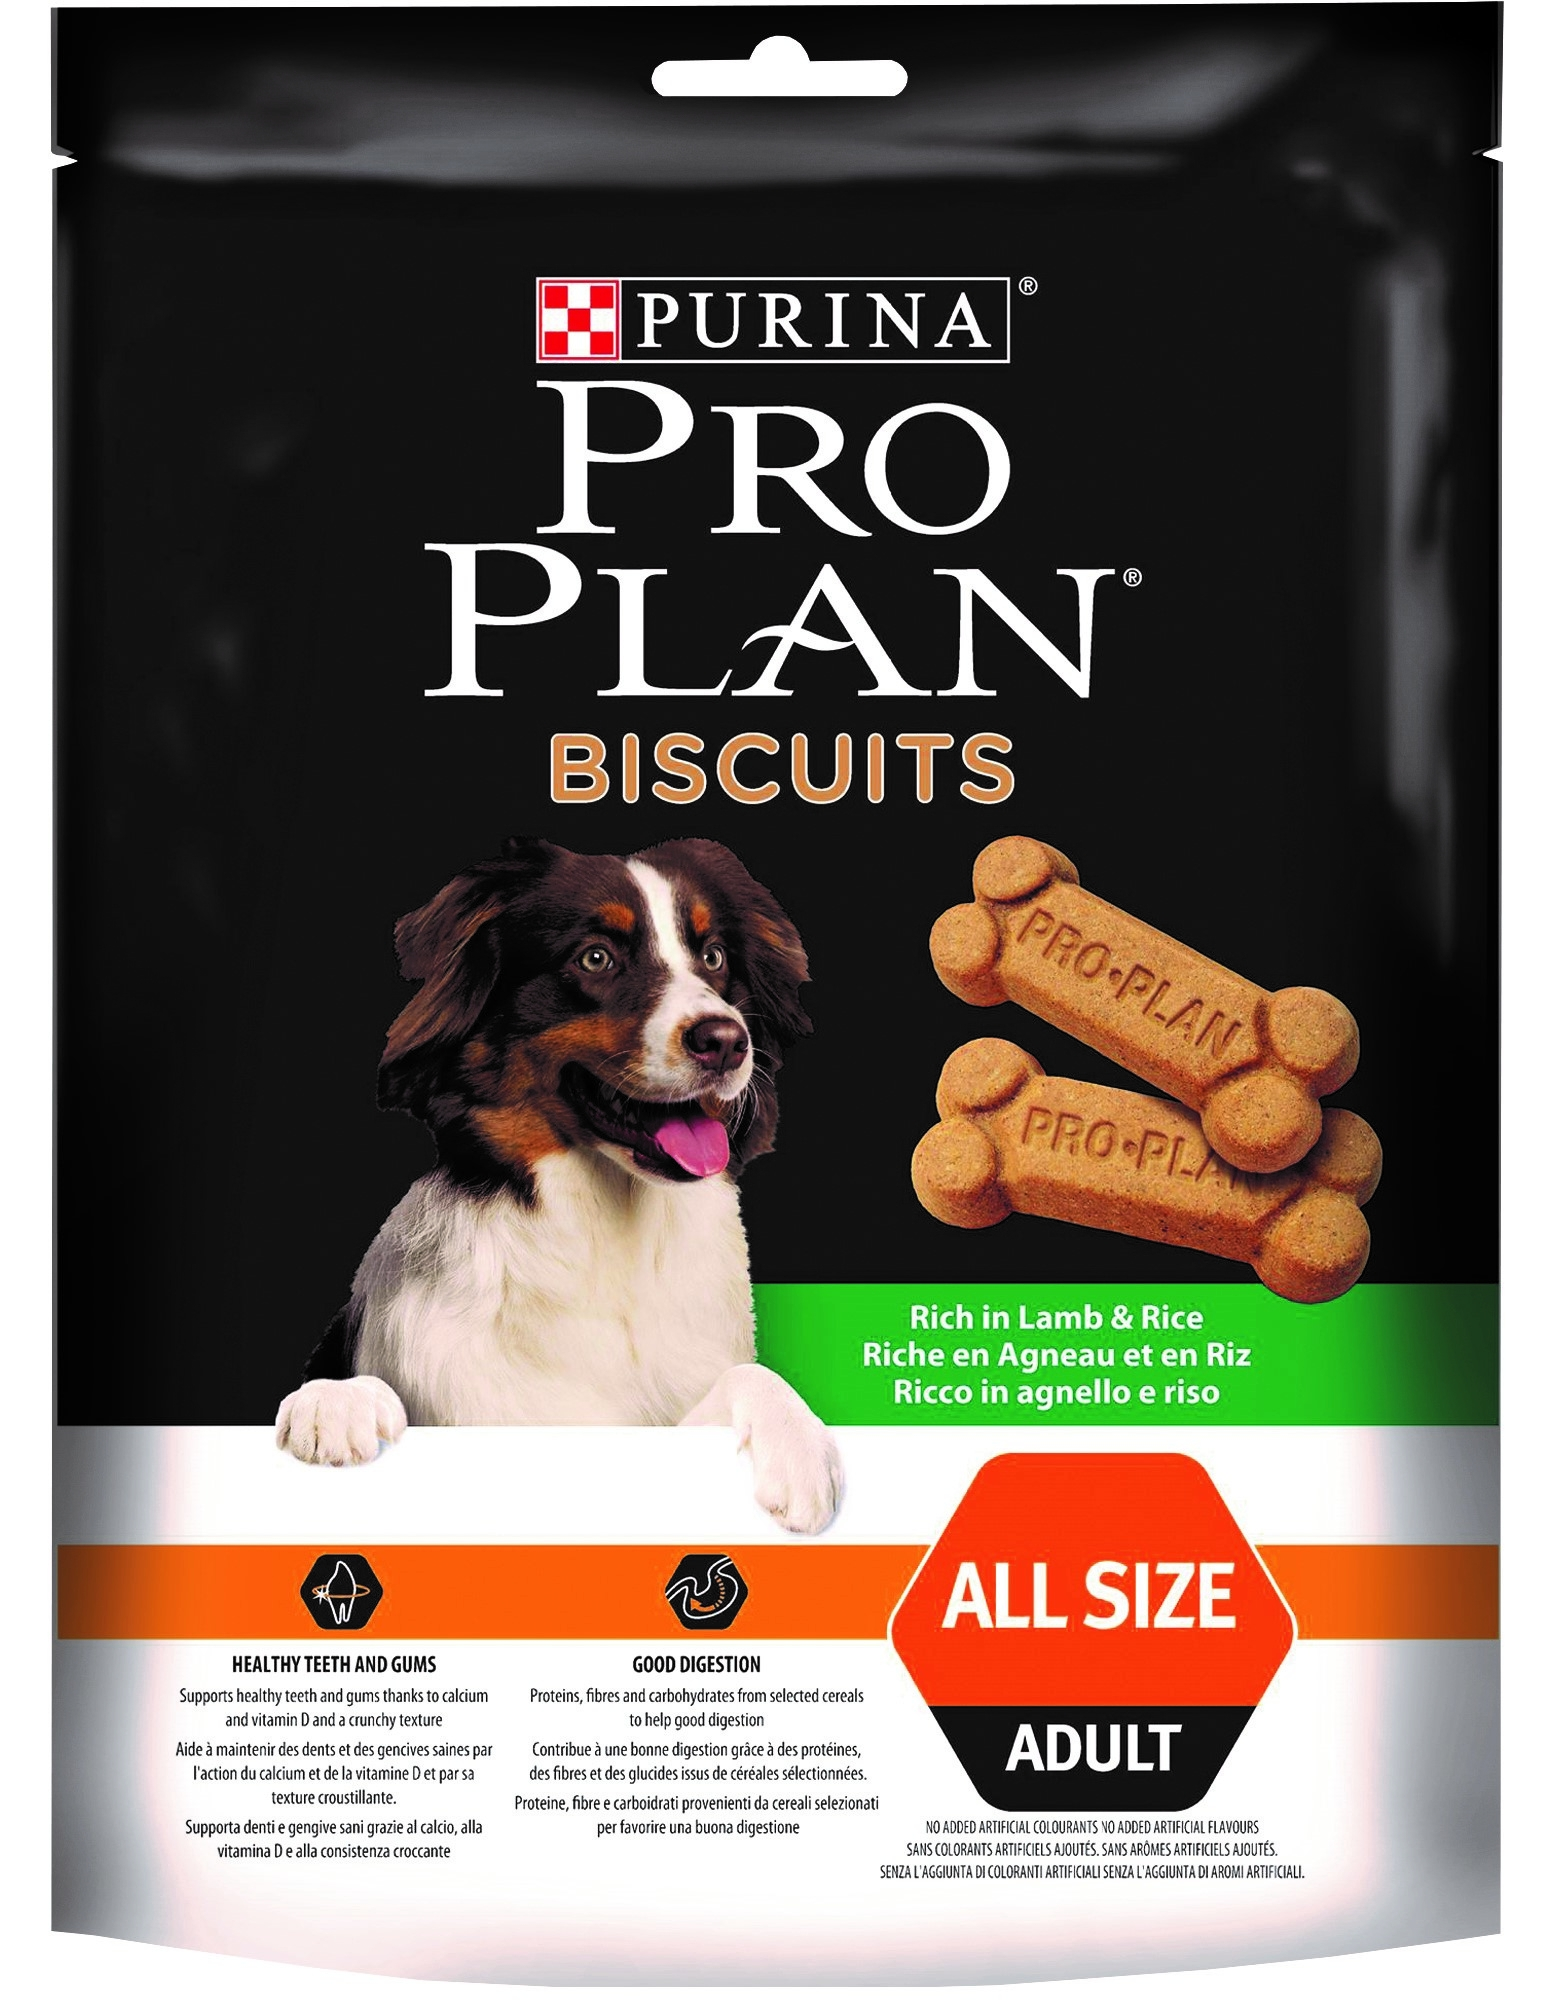 PRO PLAN® BISCUITS (Aρνί)